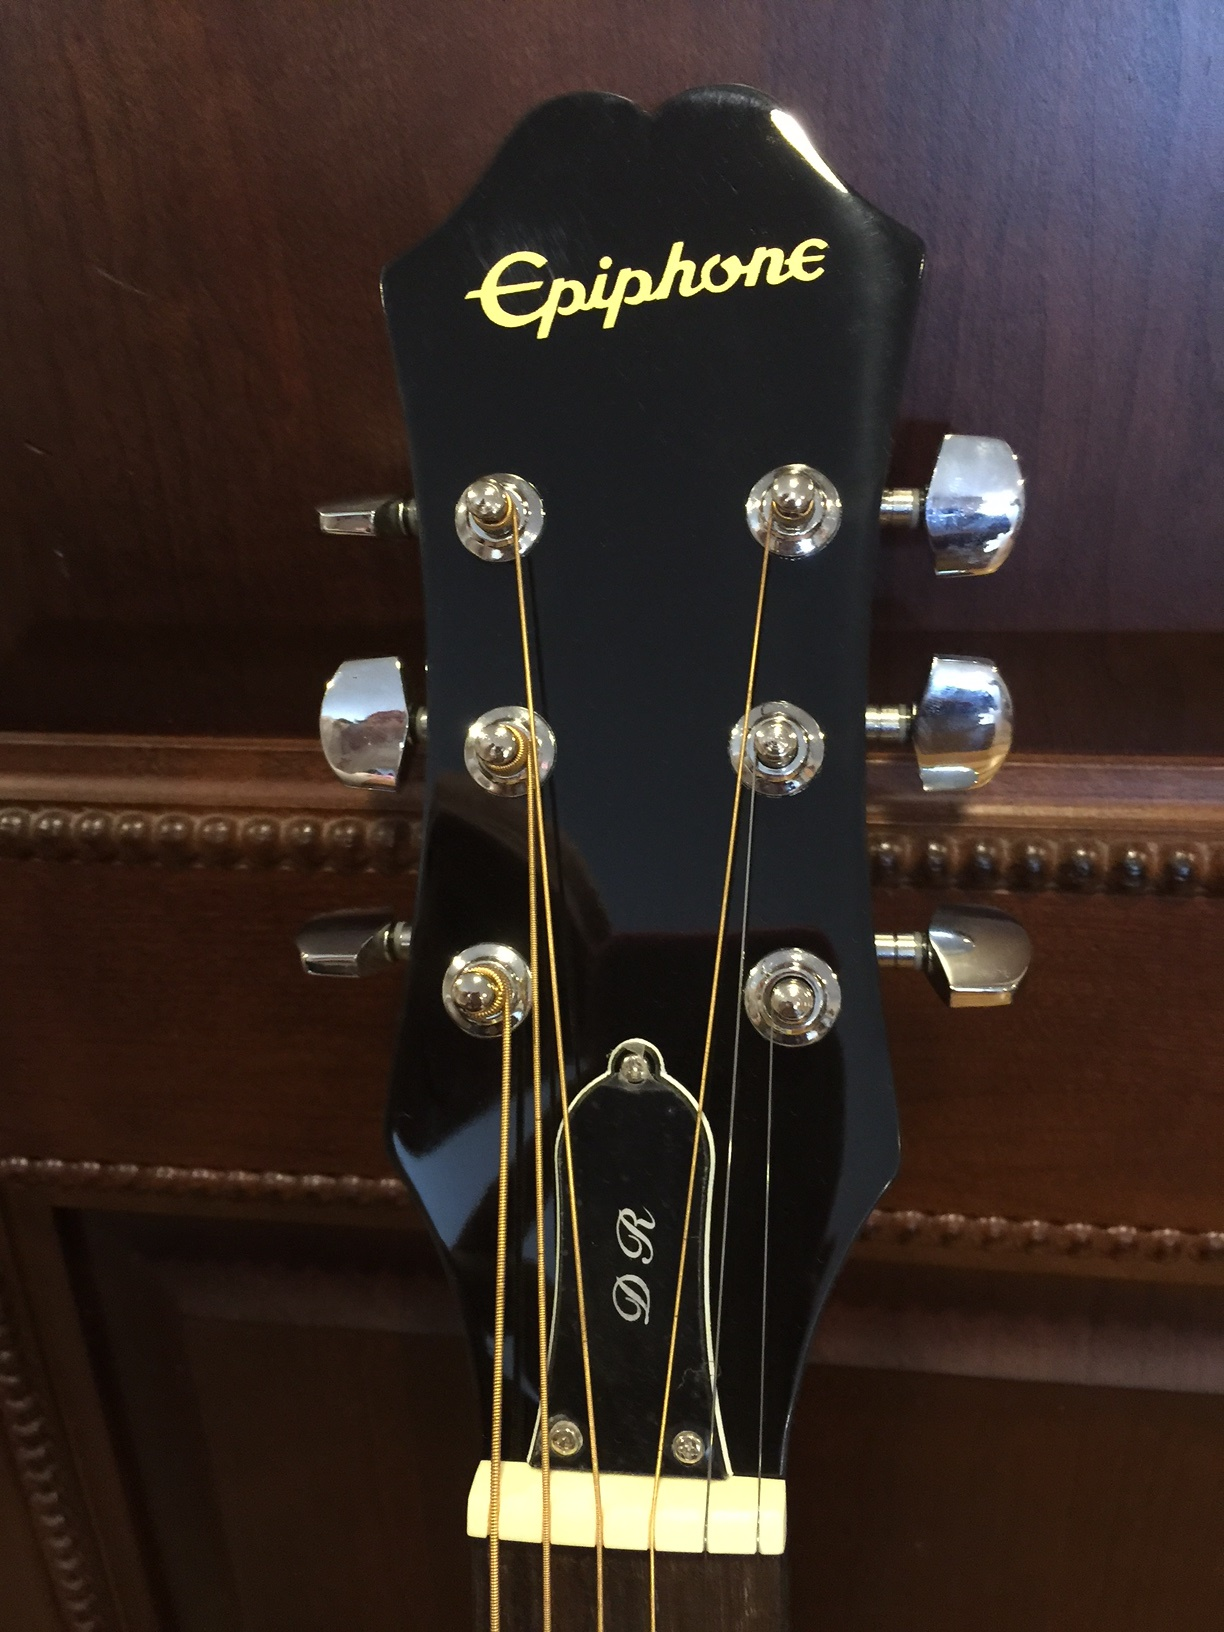 Gipson_Epiphone_Grant_Gill_Signed_Guitar_3.jpg